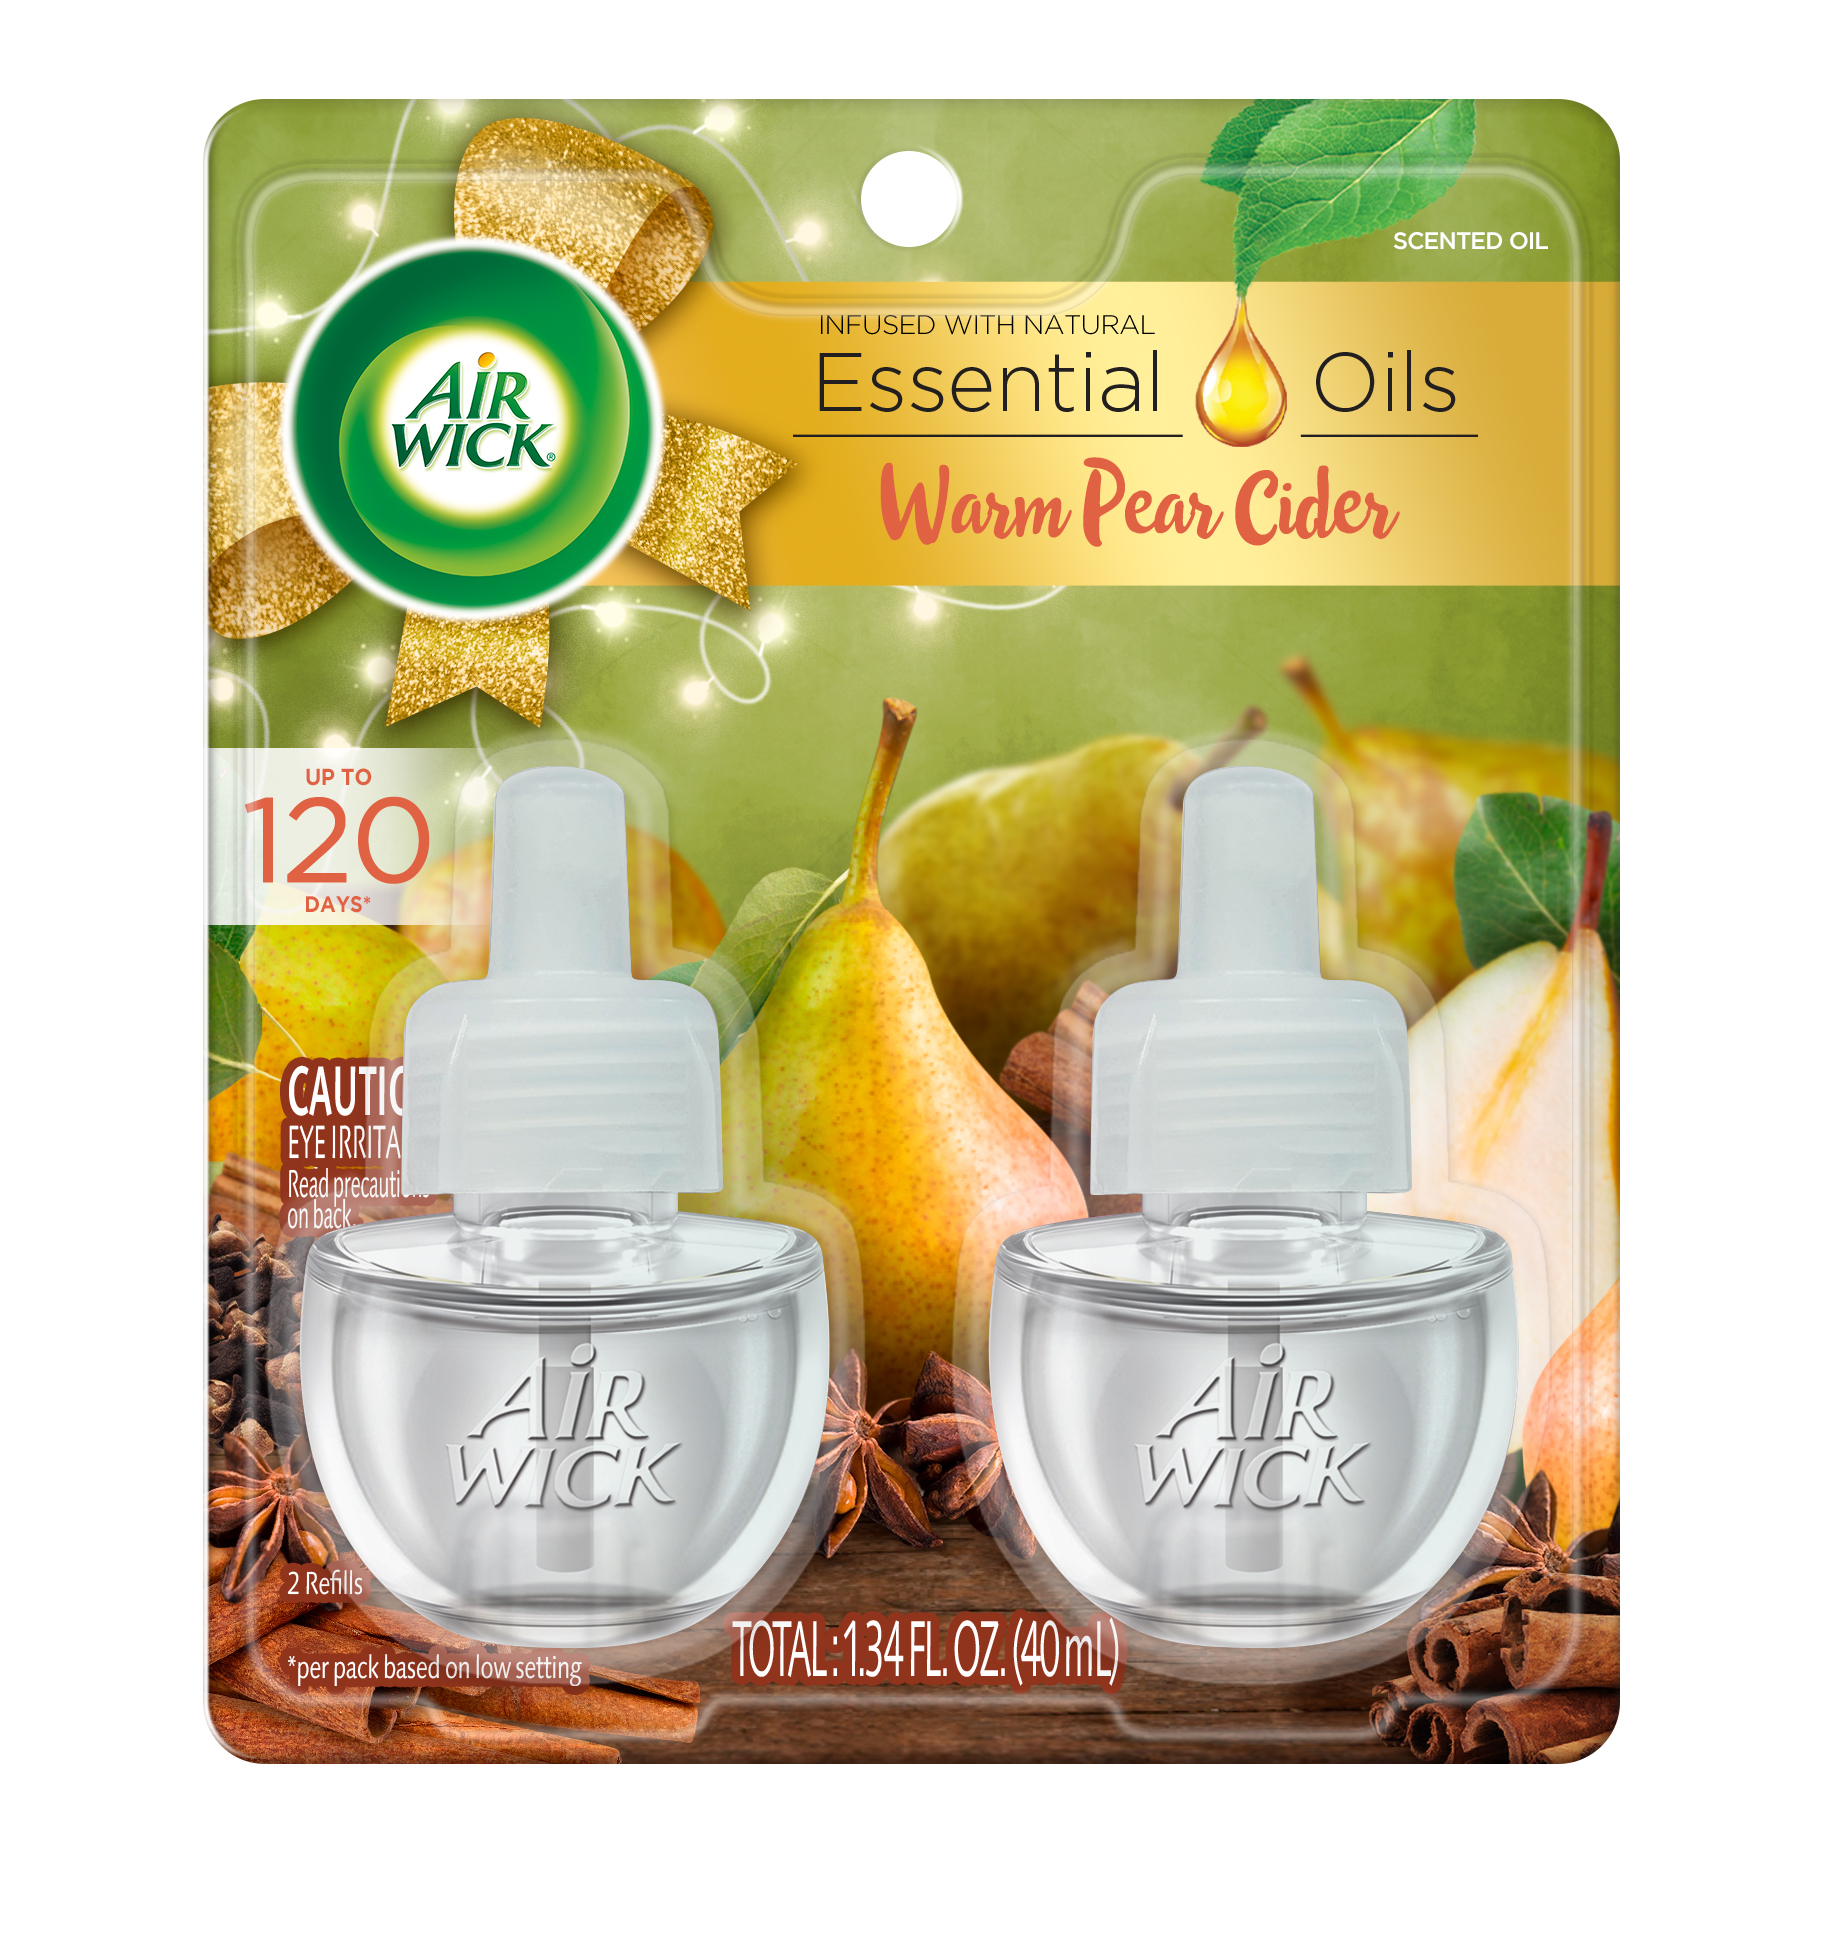 AIR WICK® Scented Oil - Warm Pear Cider